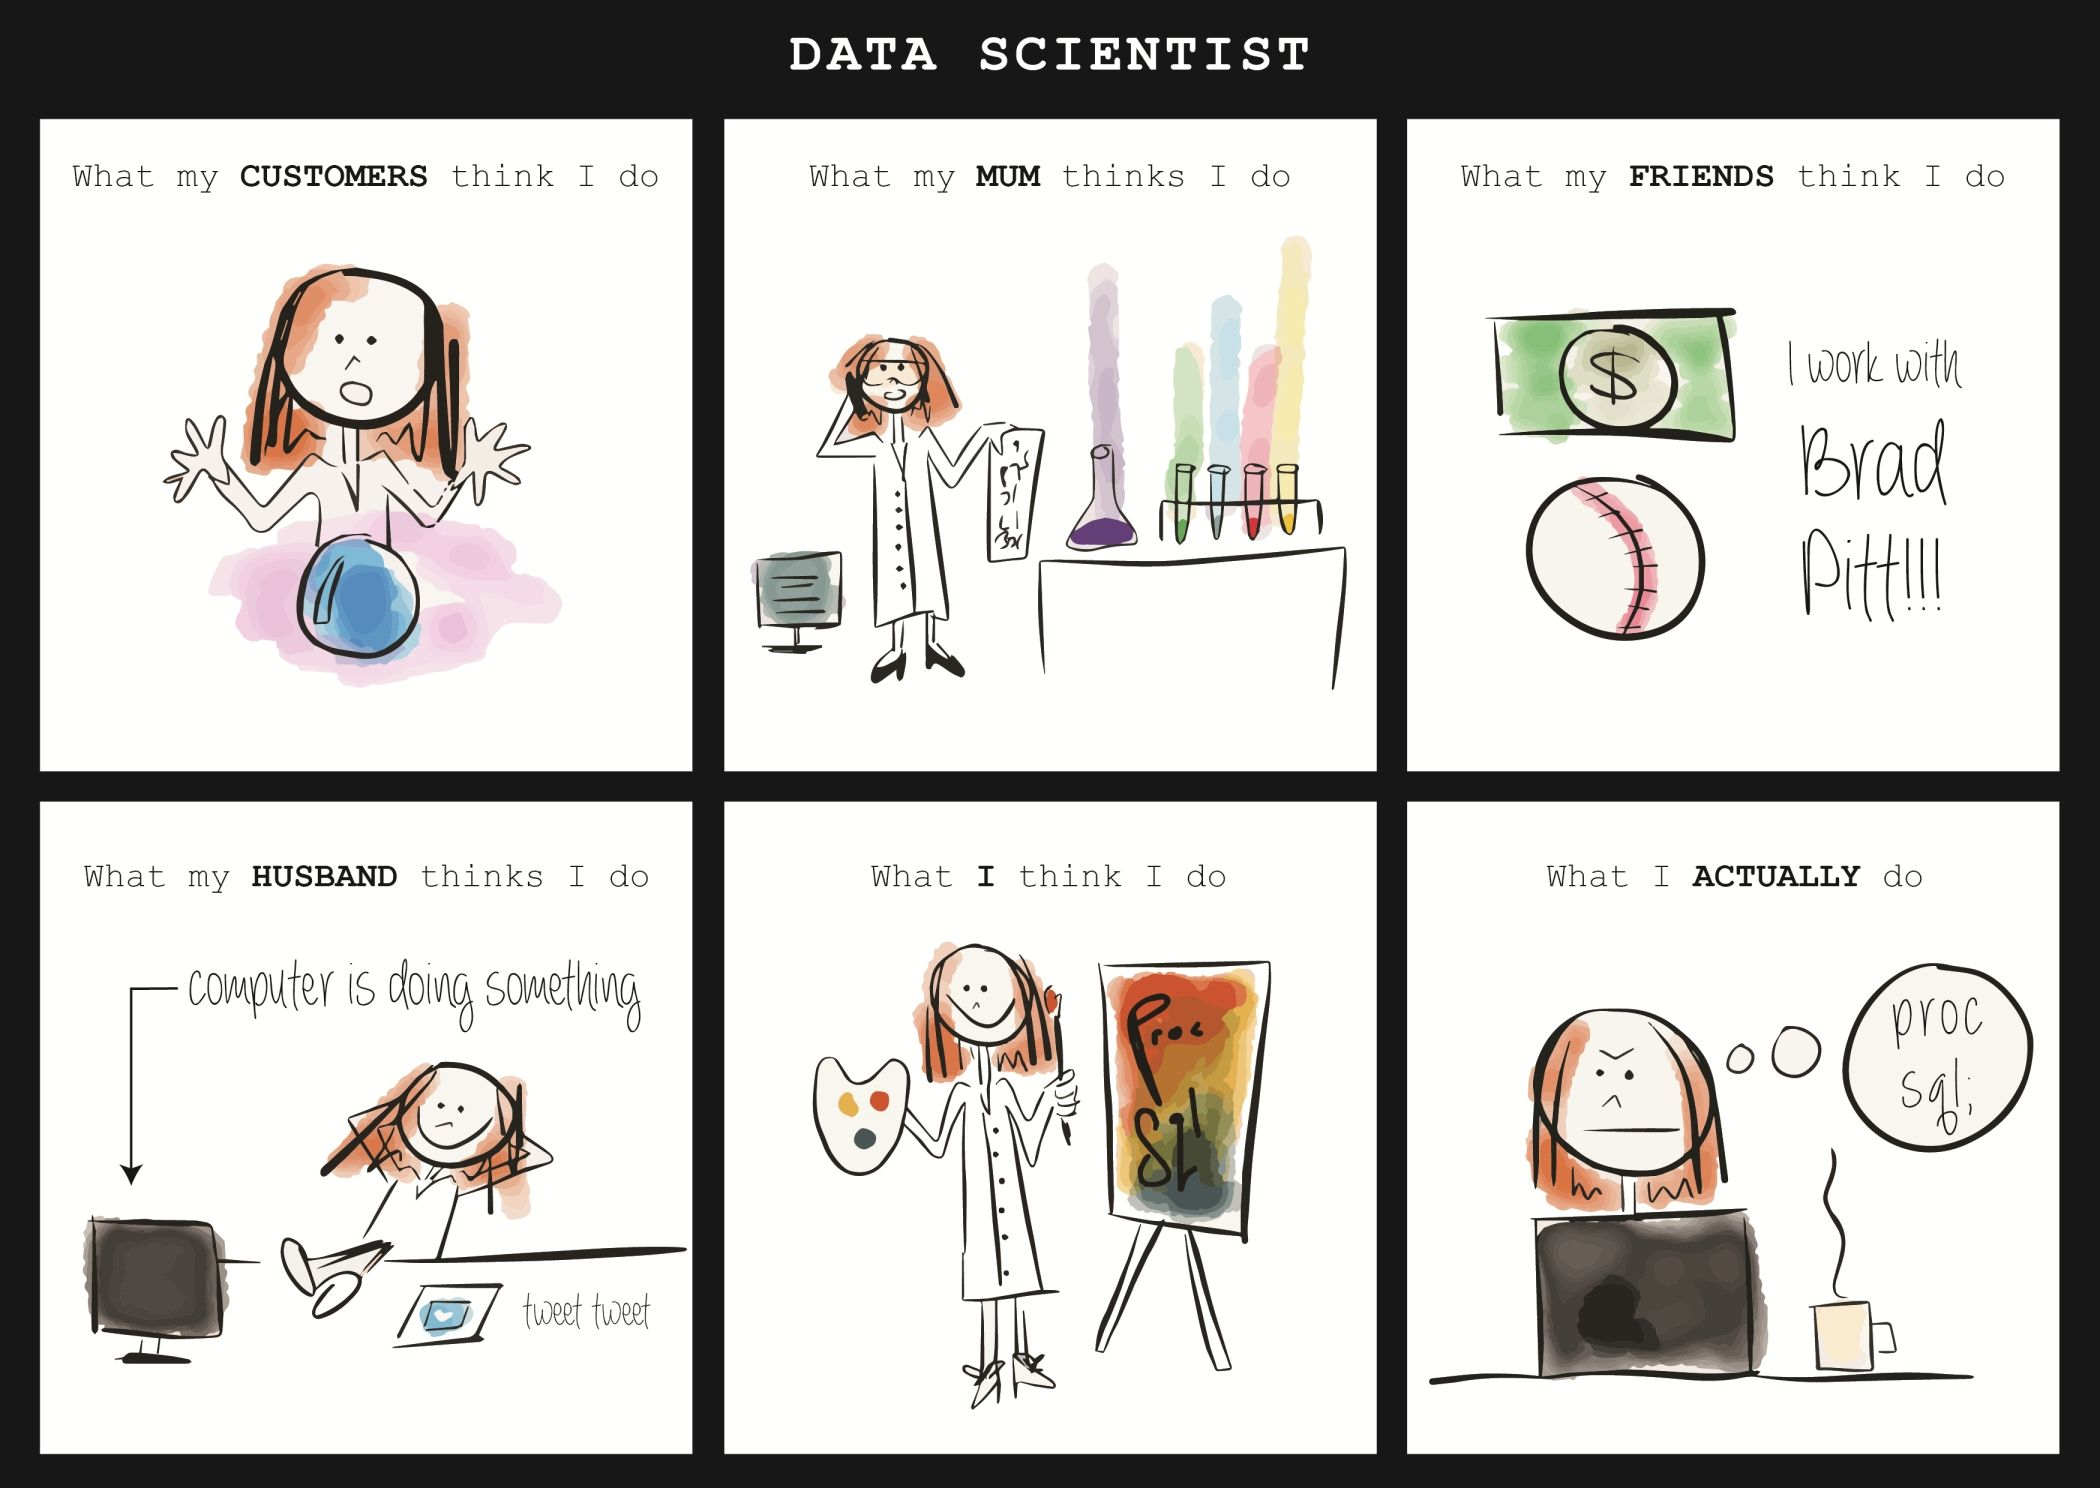 10 data scientist memes analyse this year's 'hottest